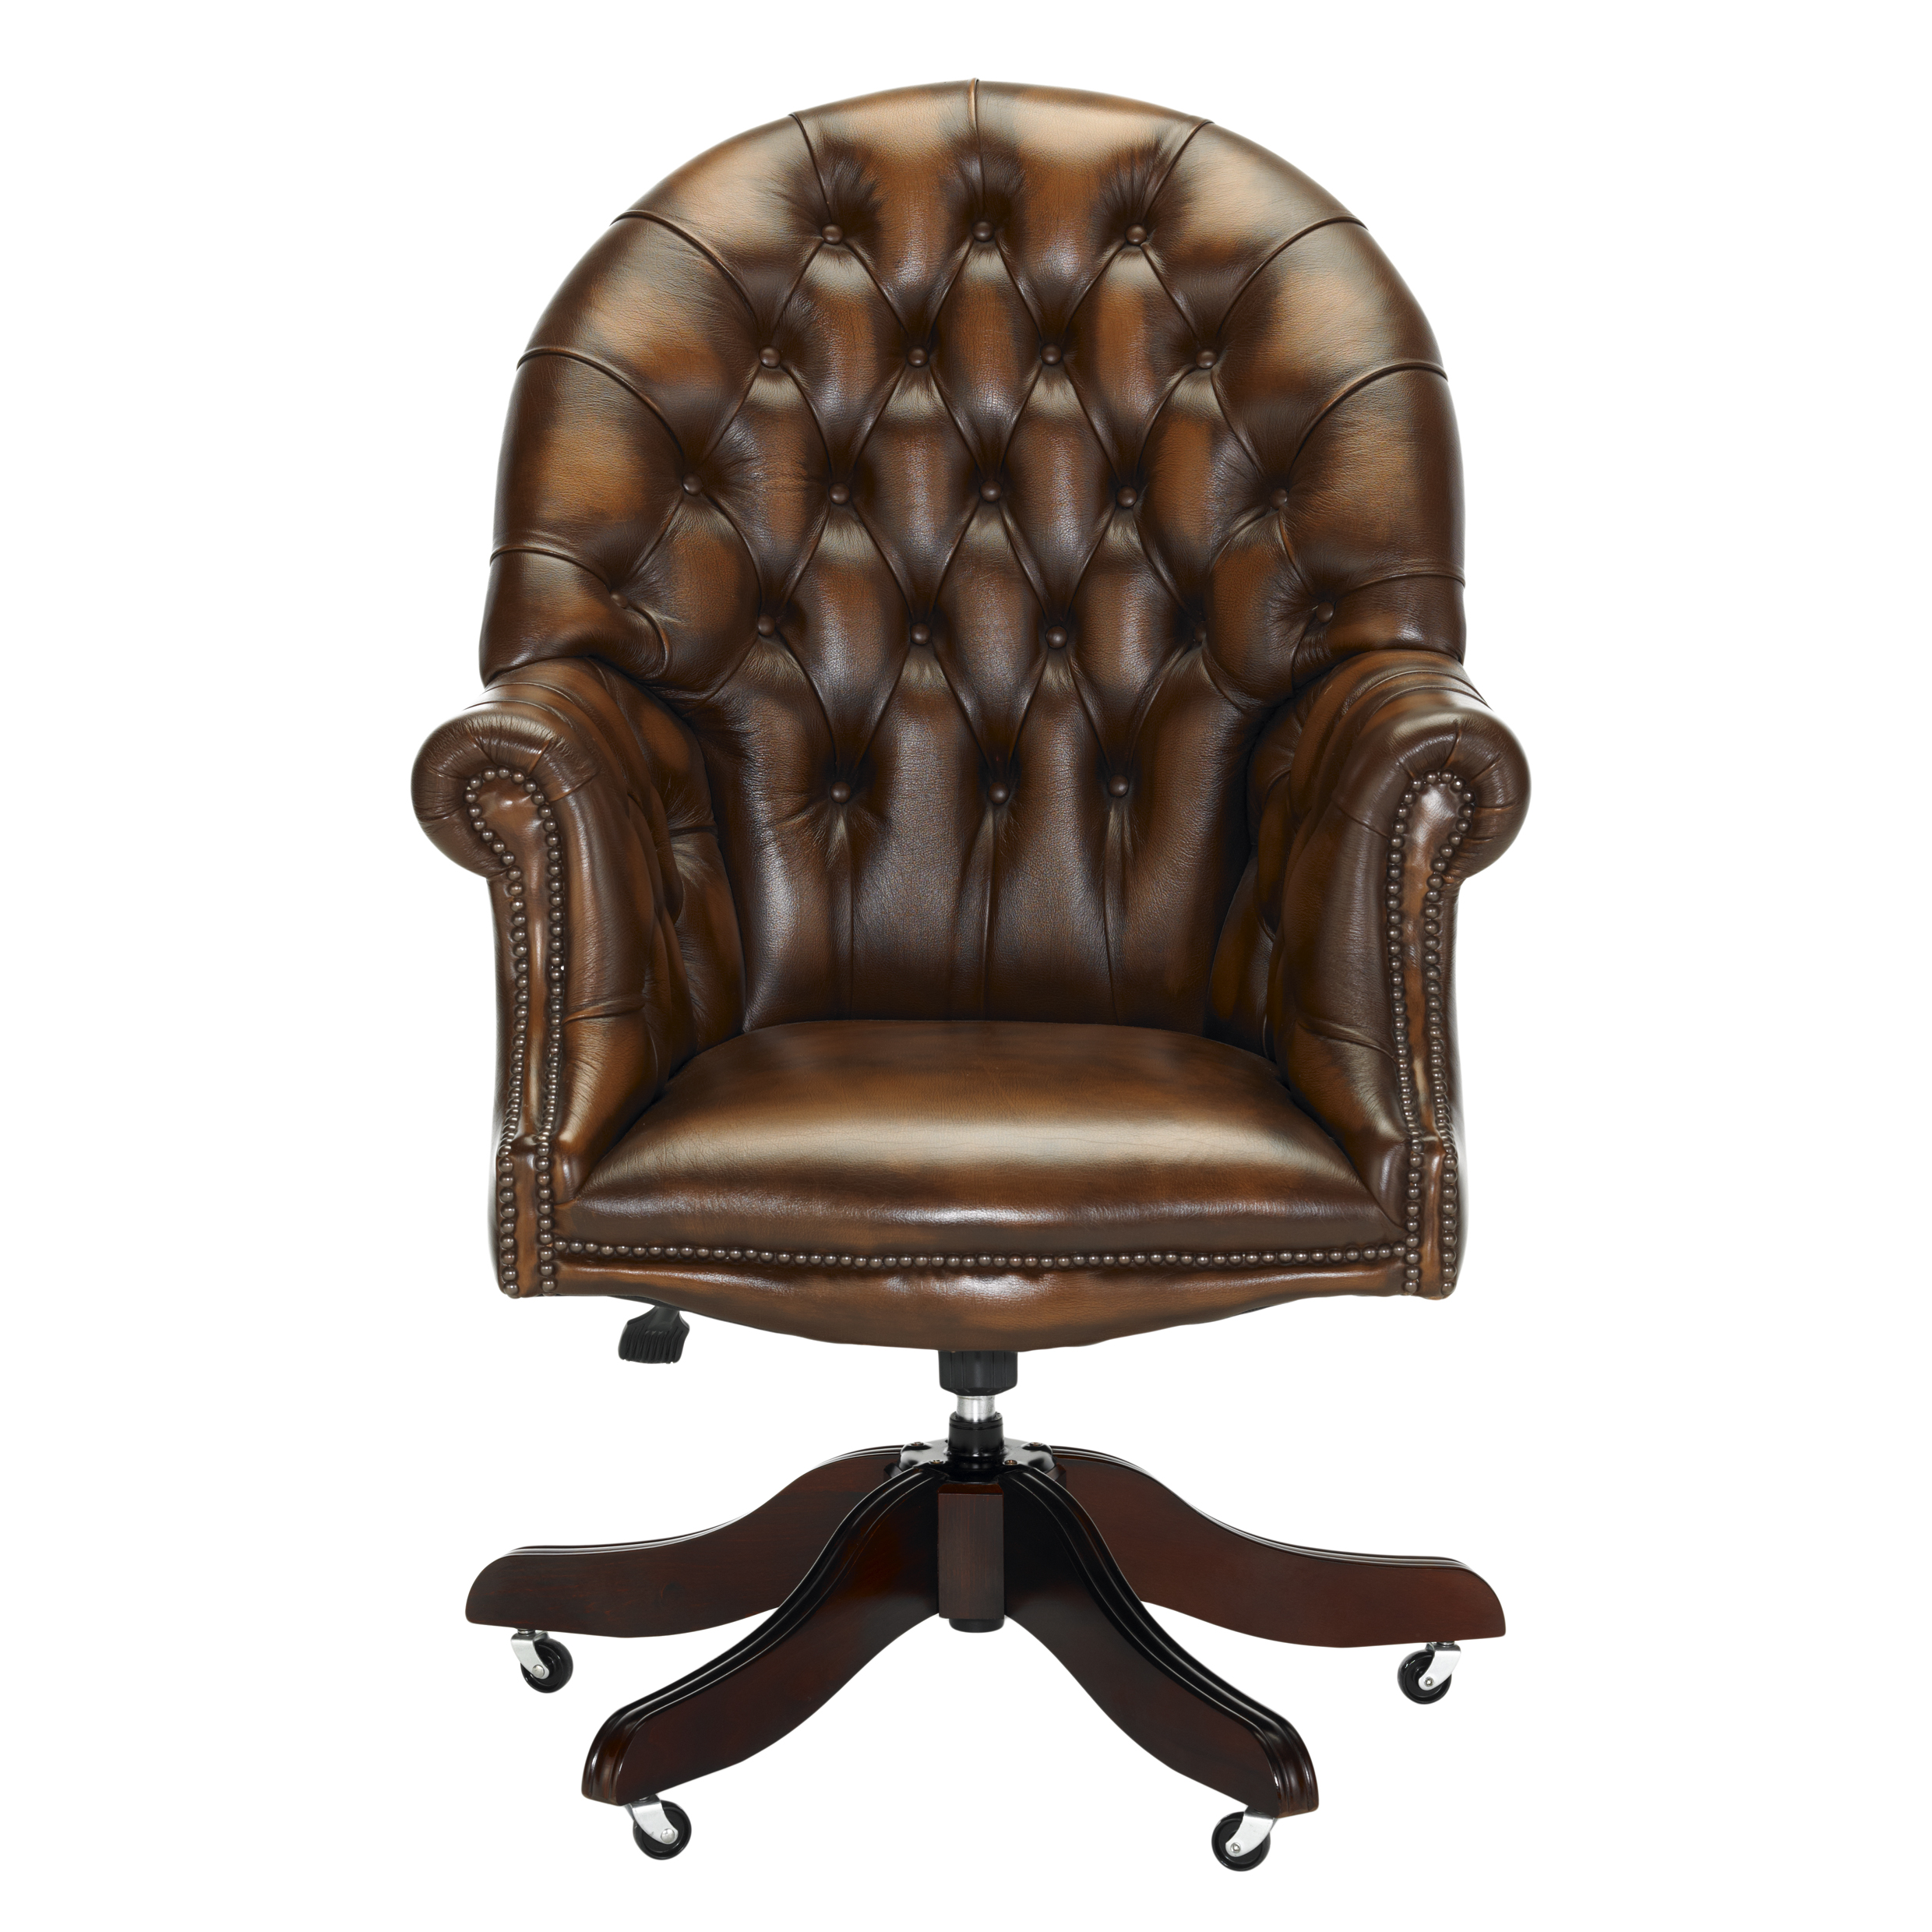 The Directors Office Chair English Chesterfields